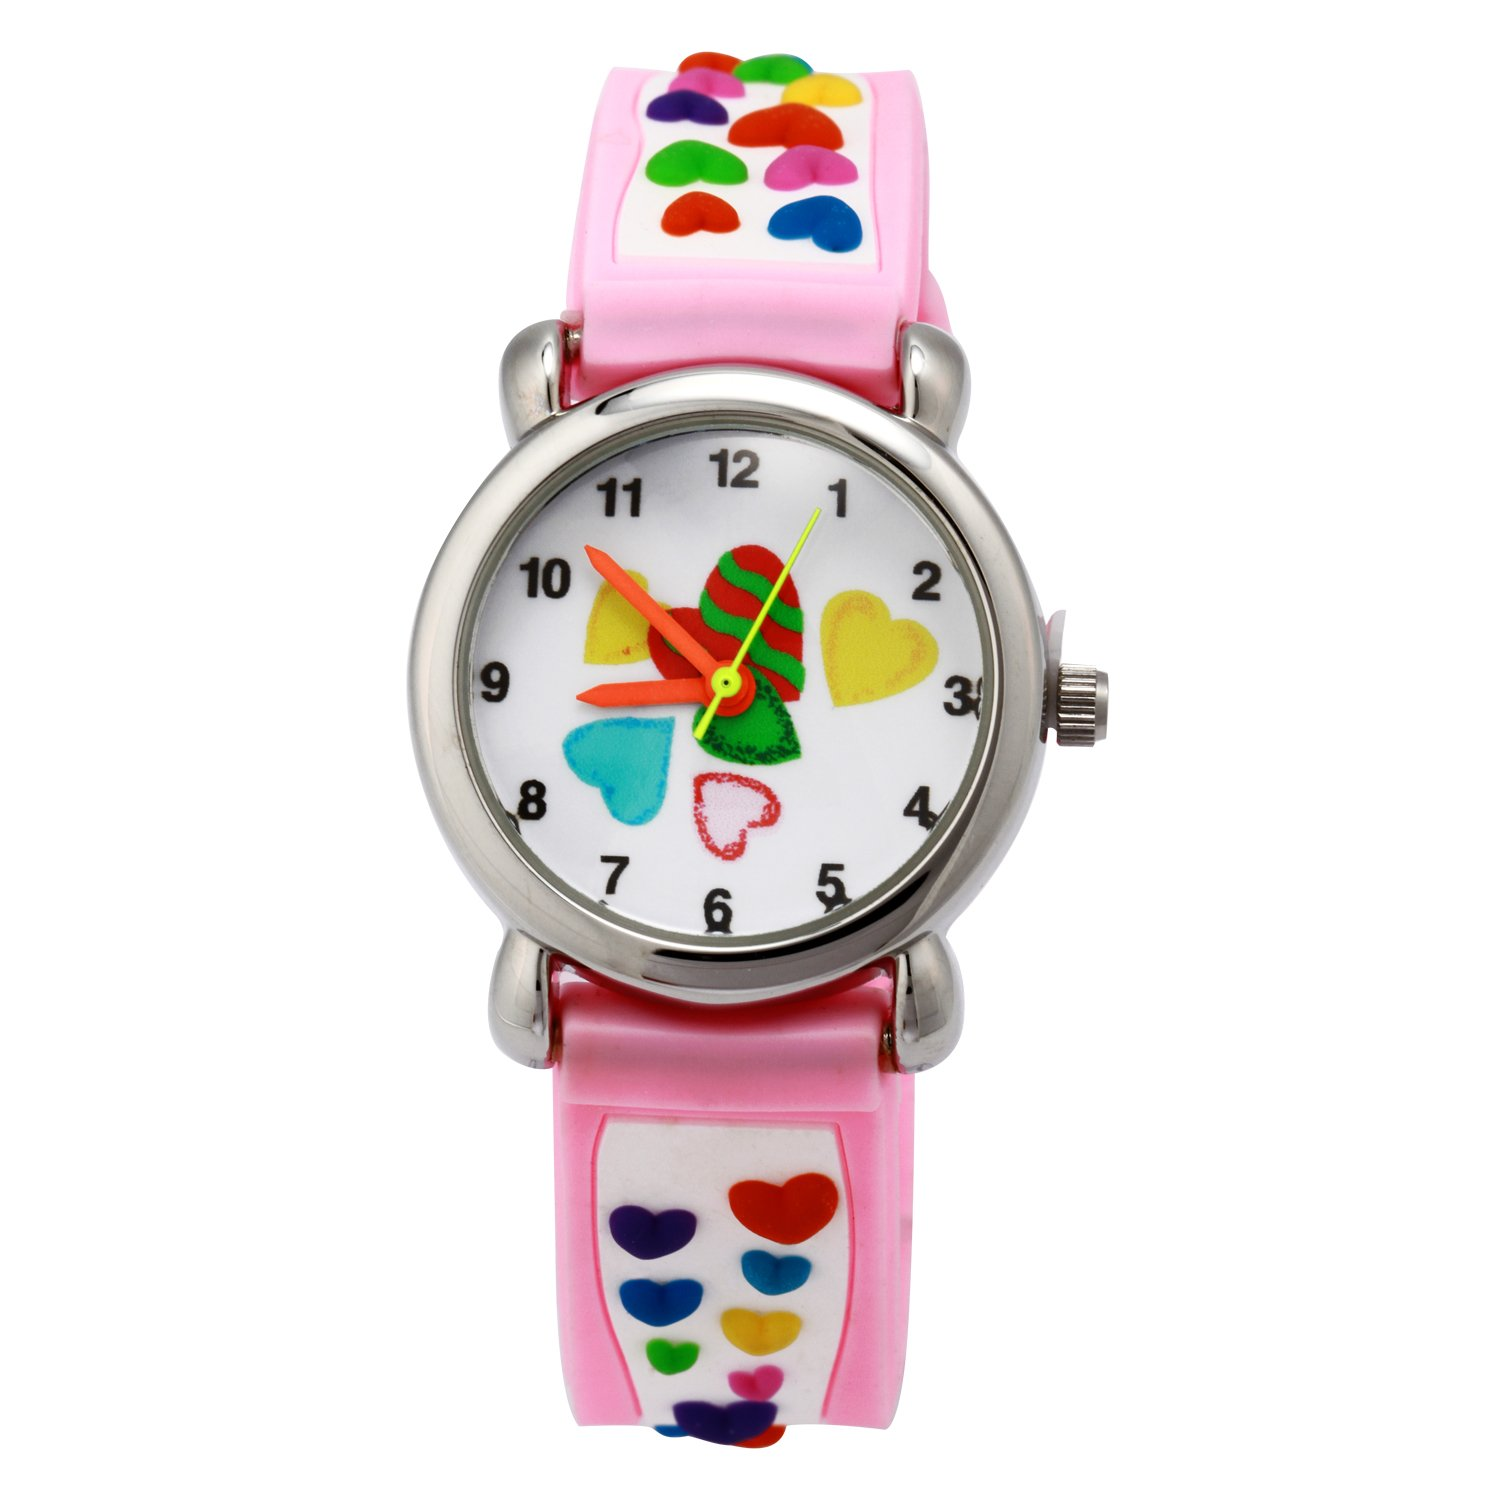 TOPCHANCES Kids Watches 3D Cute Cartoon Children Silicone Wrist Watches Time Manage Teacher Gifts for Boys Girls (Pink Love)